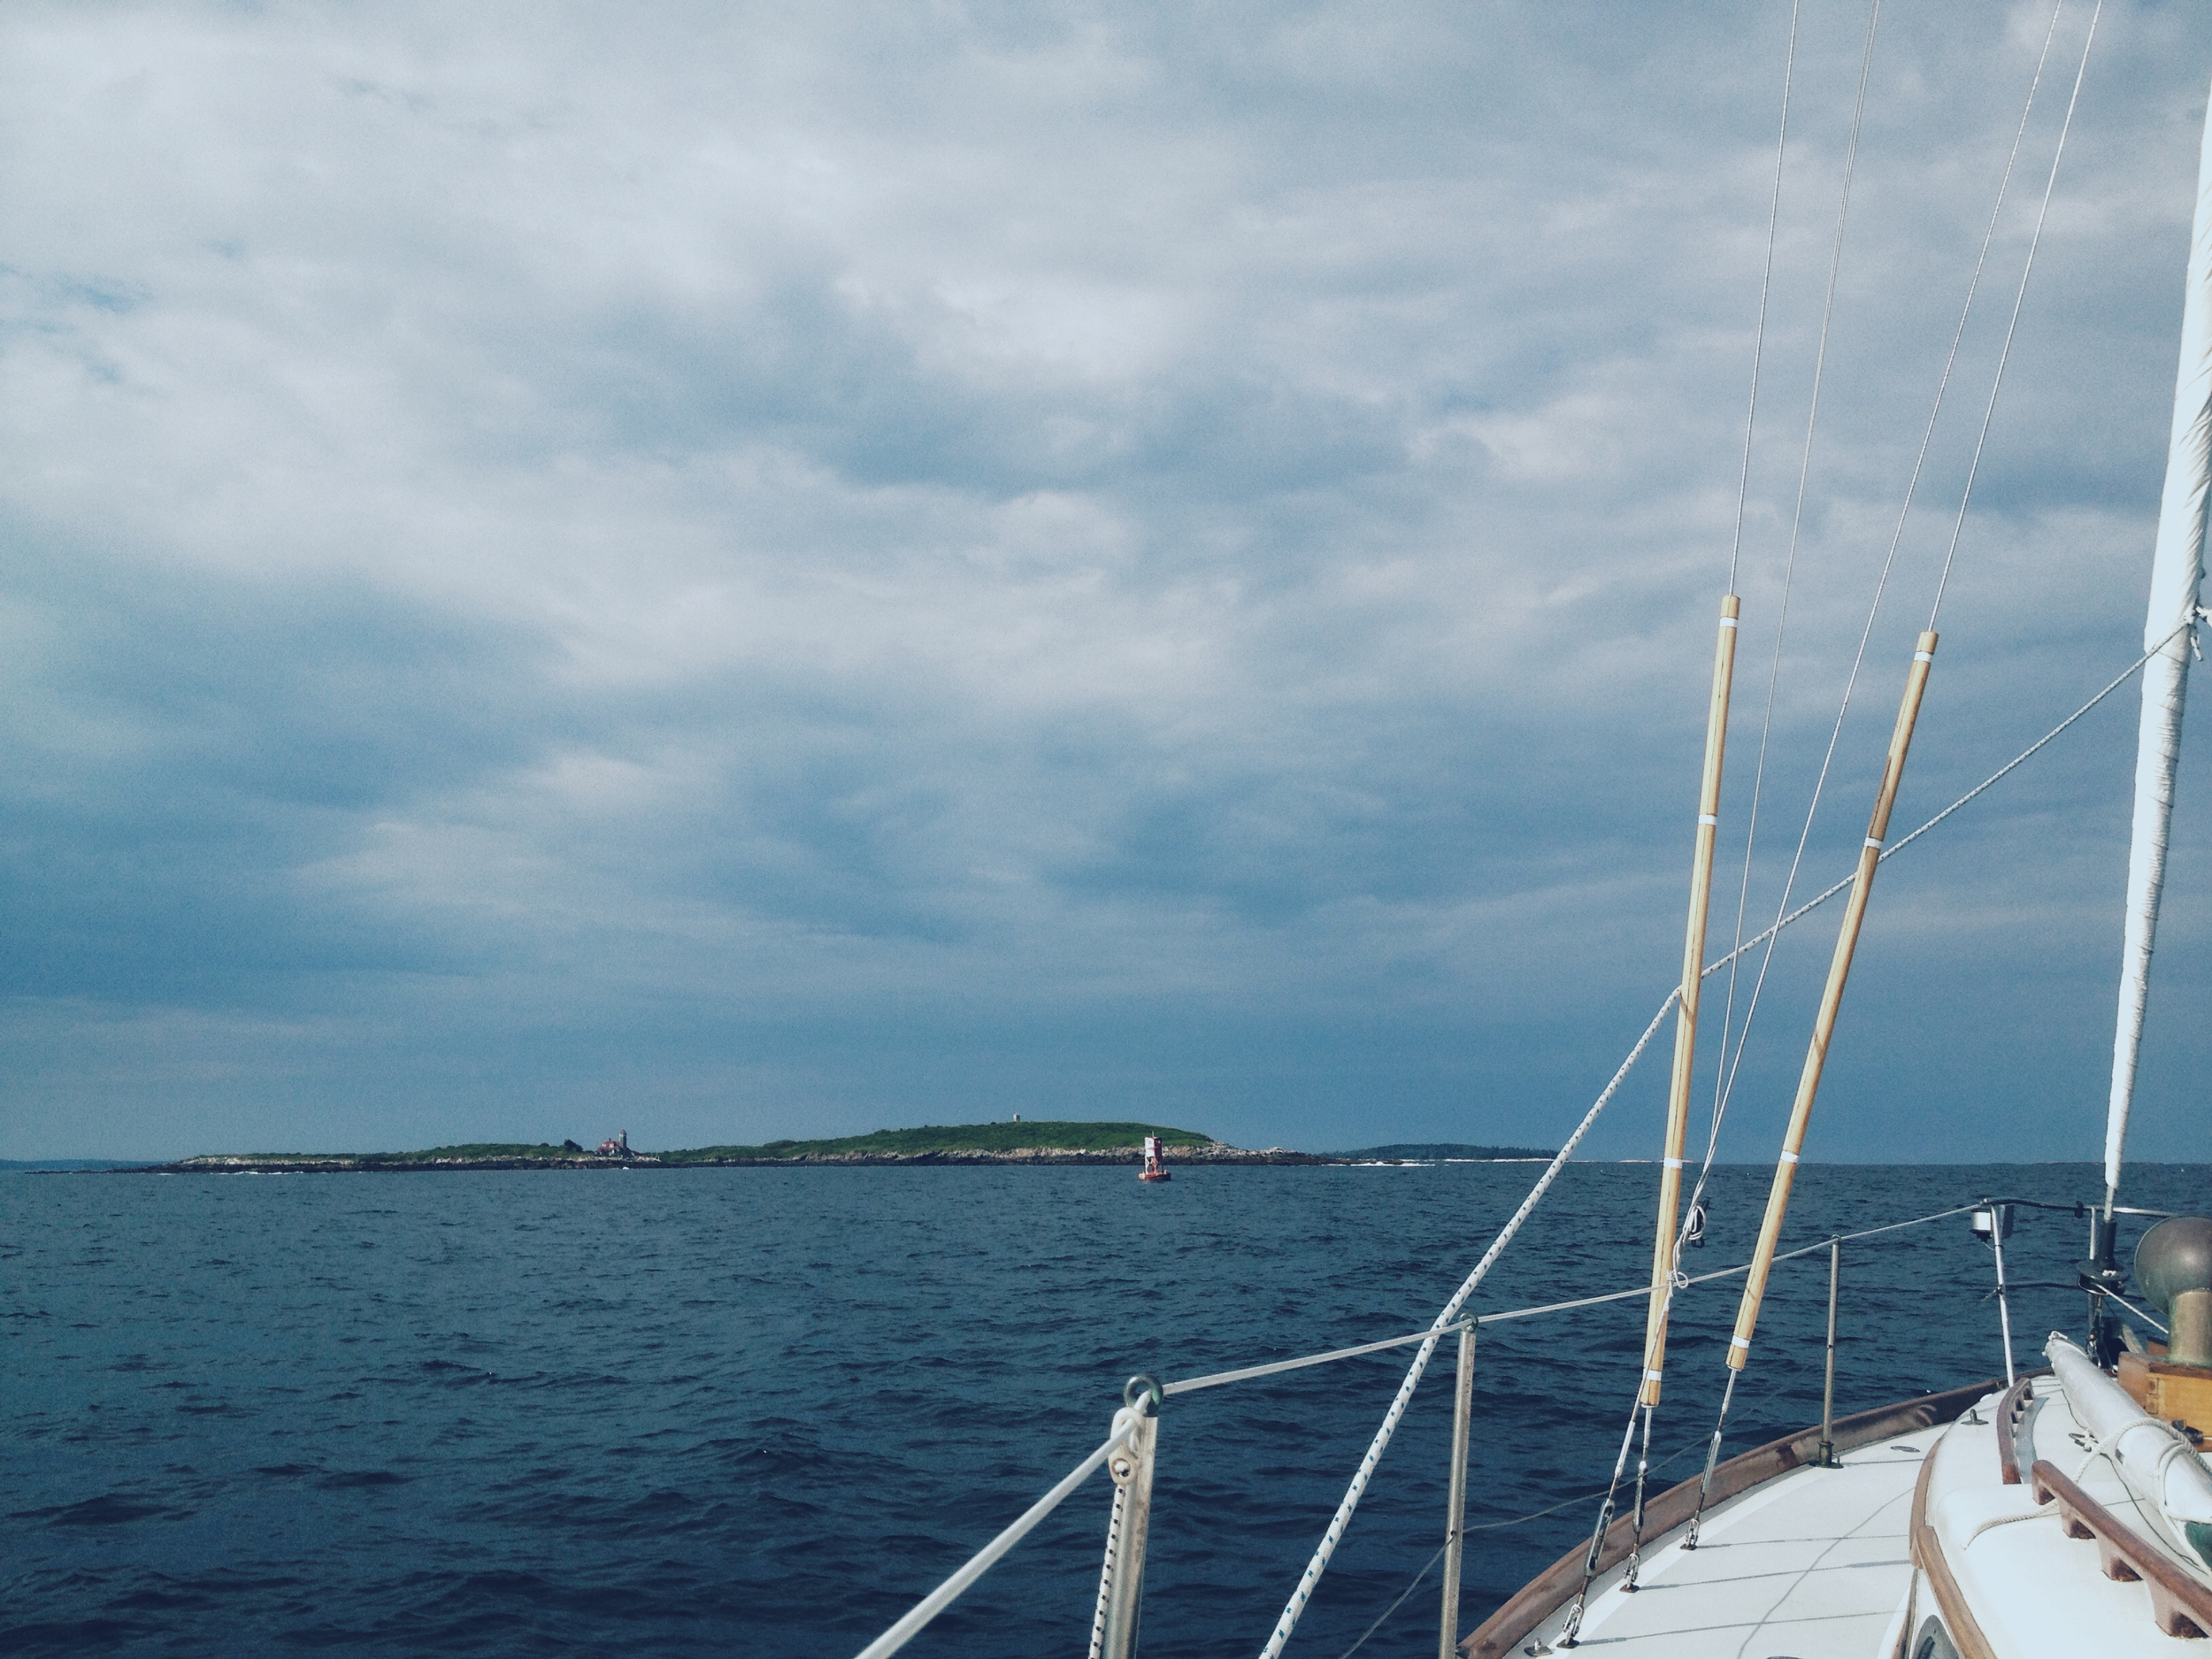 Off the beaten path in Maine The Motions Buoy Damariscove photo by Michelle Kinerson of Cape Porpoise Trading Co